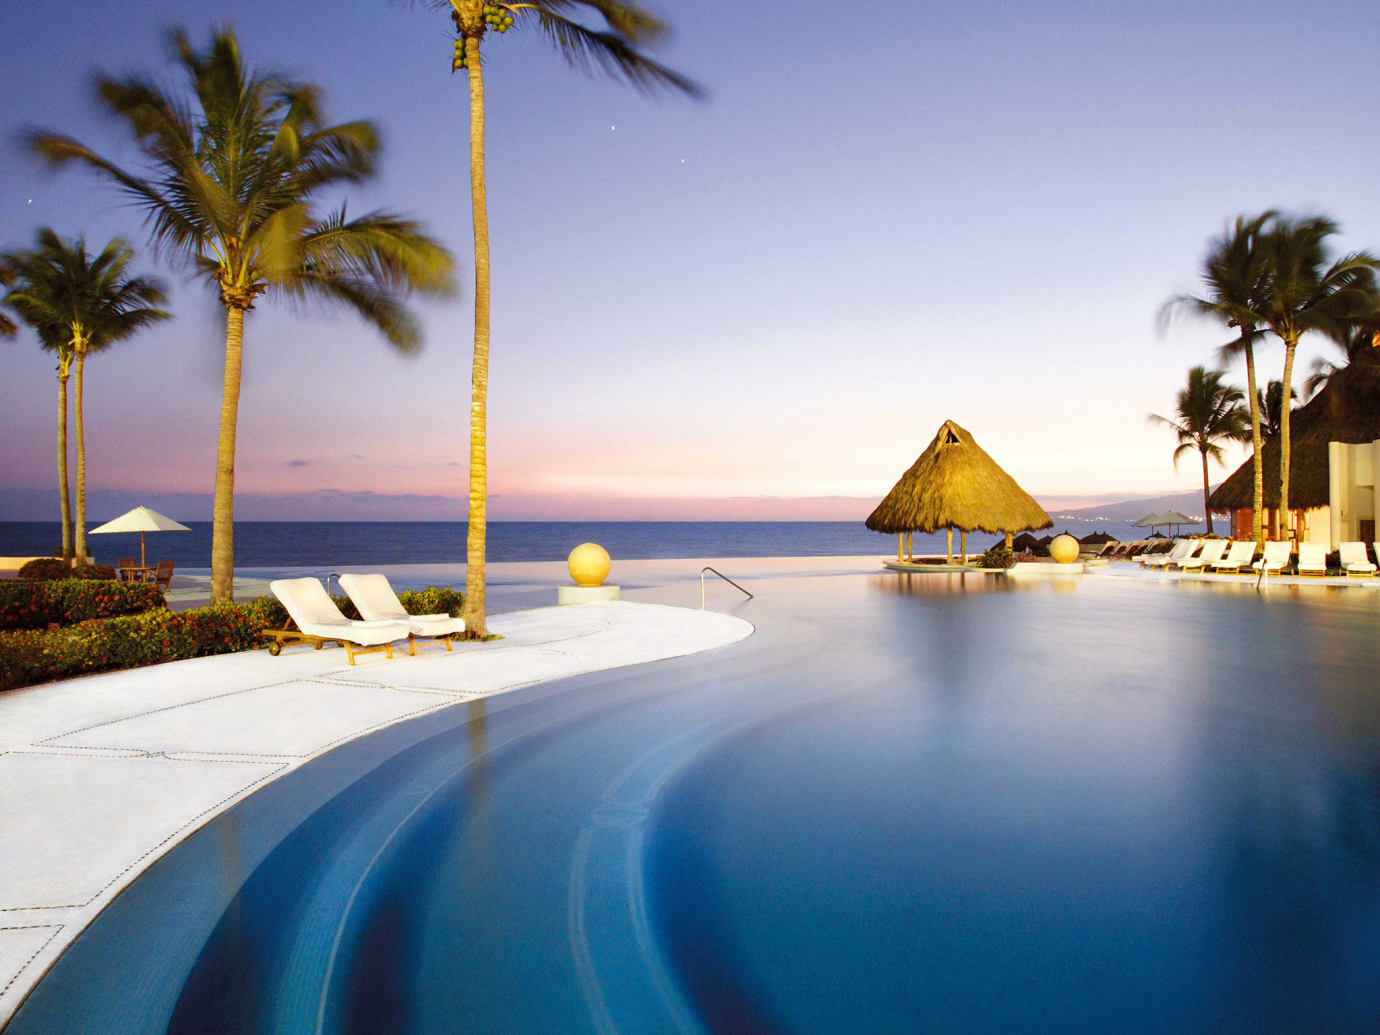 Pool in Mexico